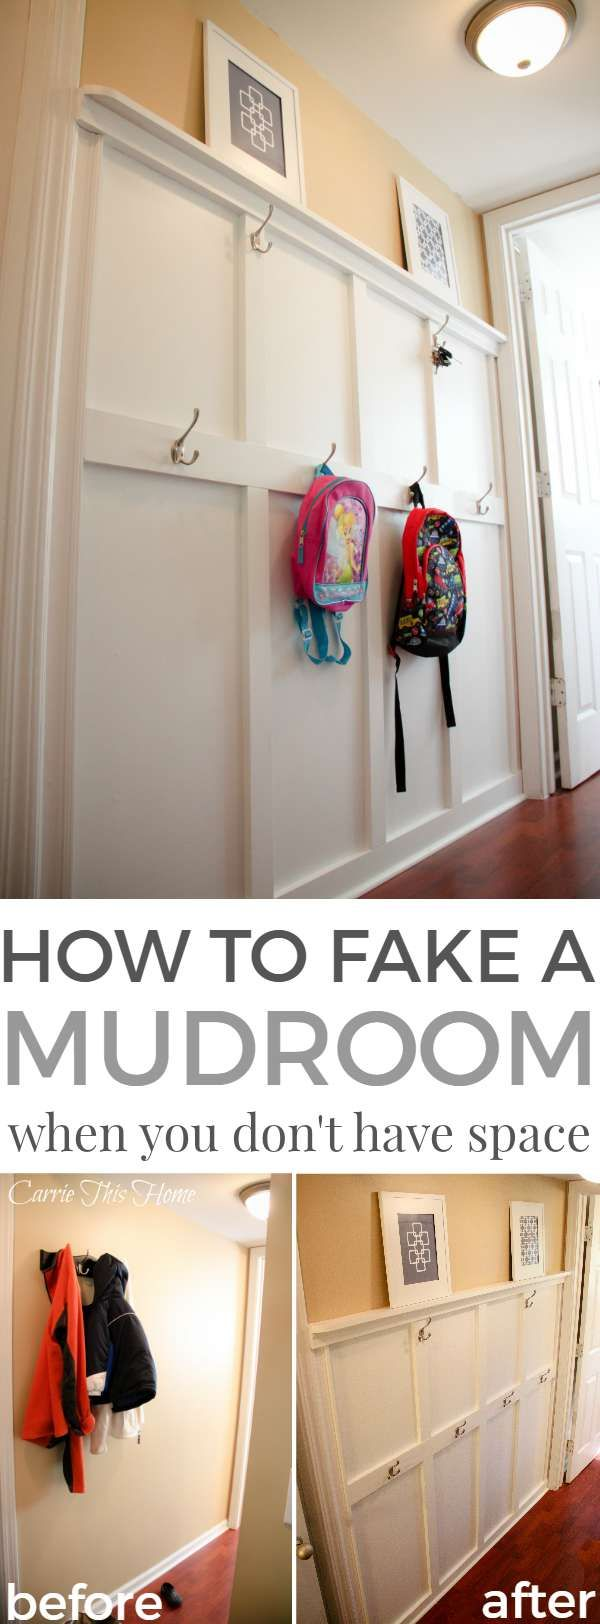 This is a must read if you're in need of storage solutions & don't have much space. Learn how to take a small space & turn it into a mudroom! How to fake a mudroom when you don't have the space #storagesolutions #mudroom